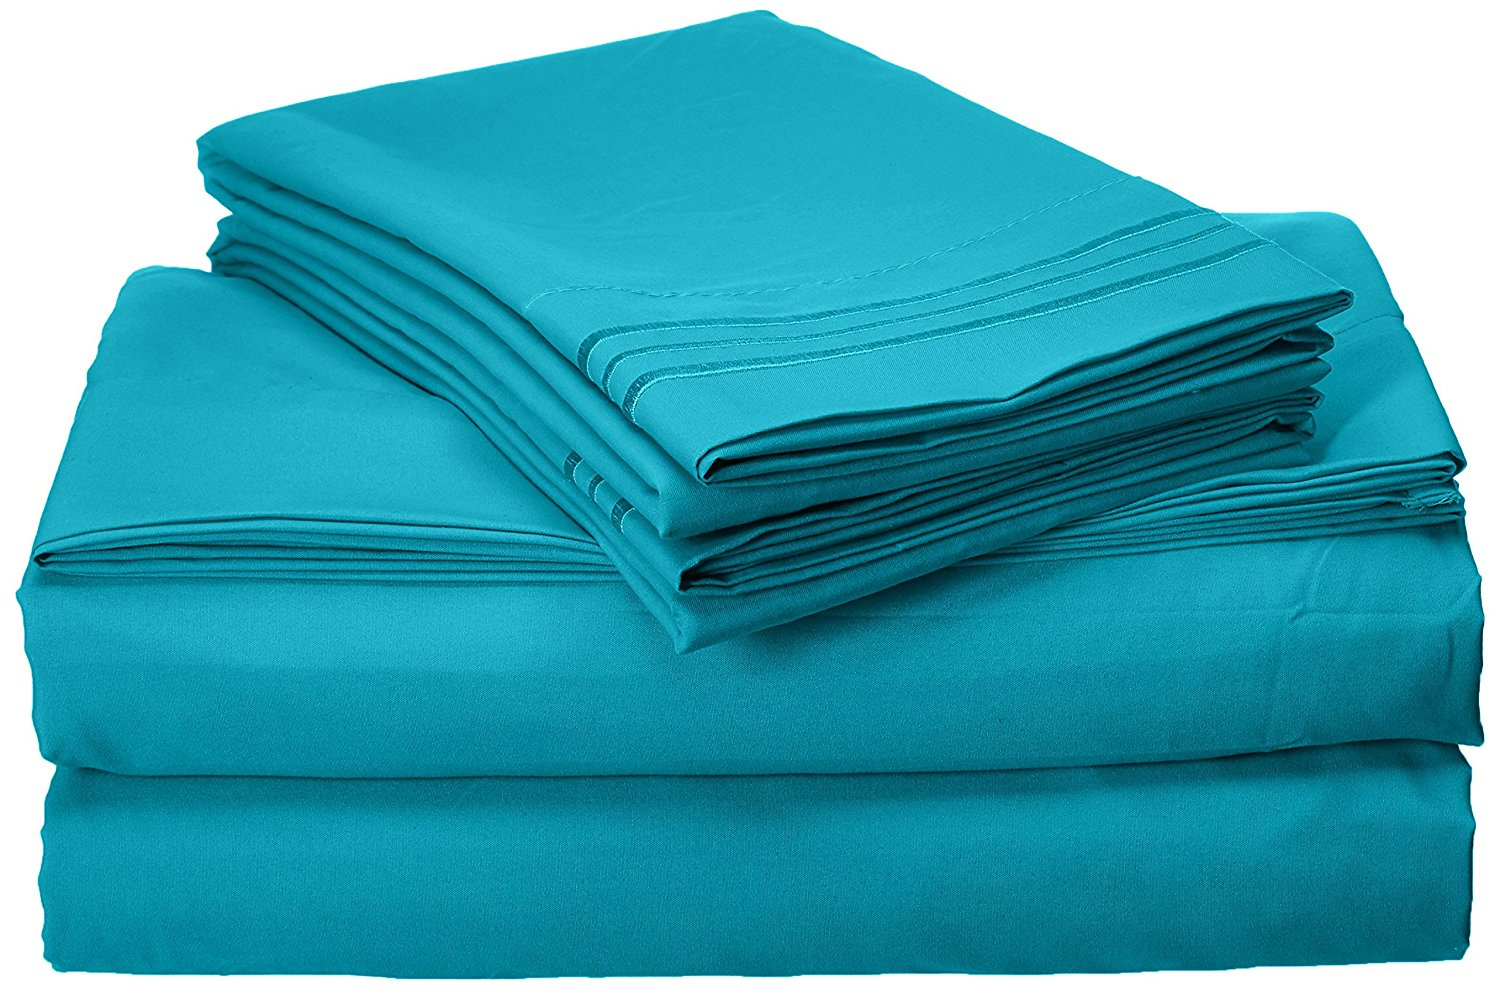 Turquoise Sheets A Touch Of Style Cool Ideas For Home